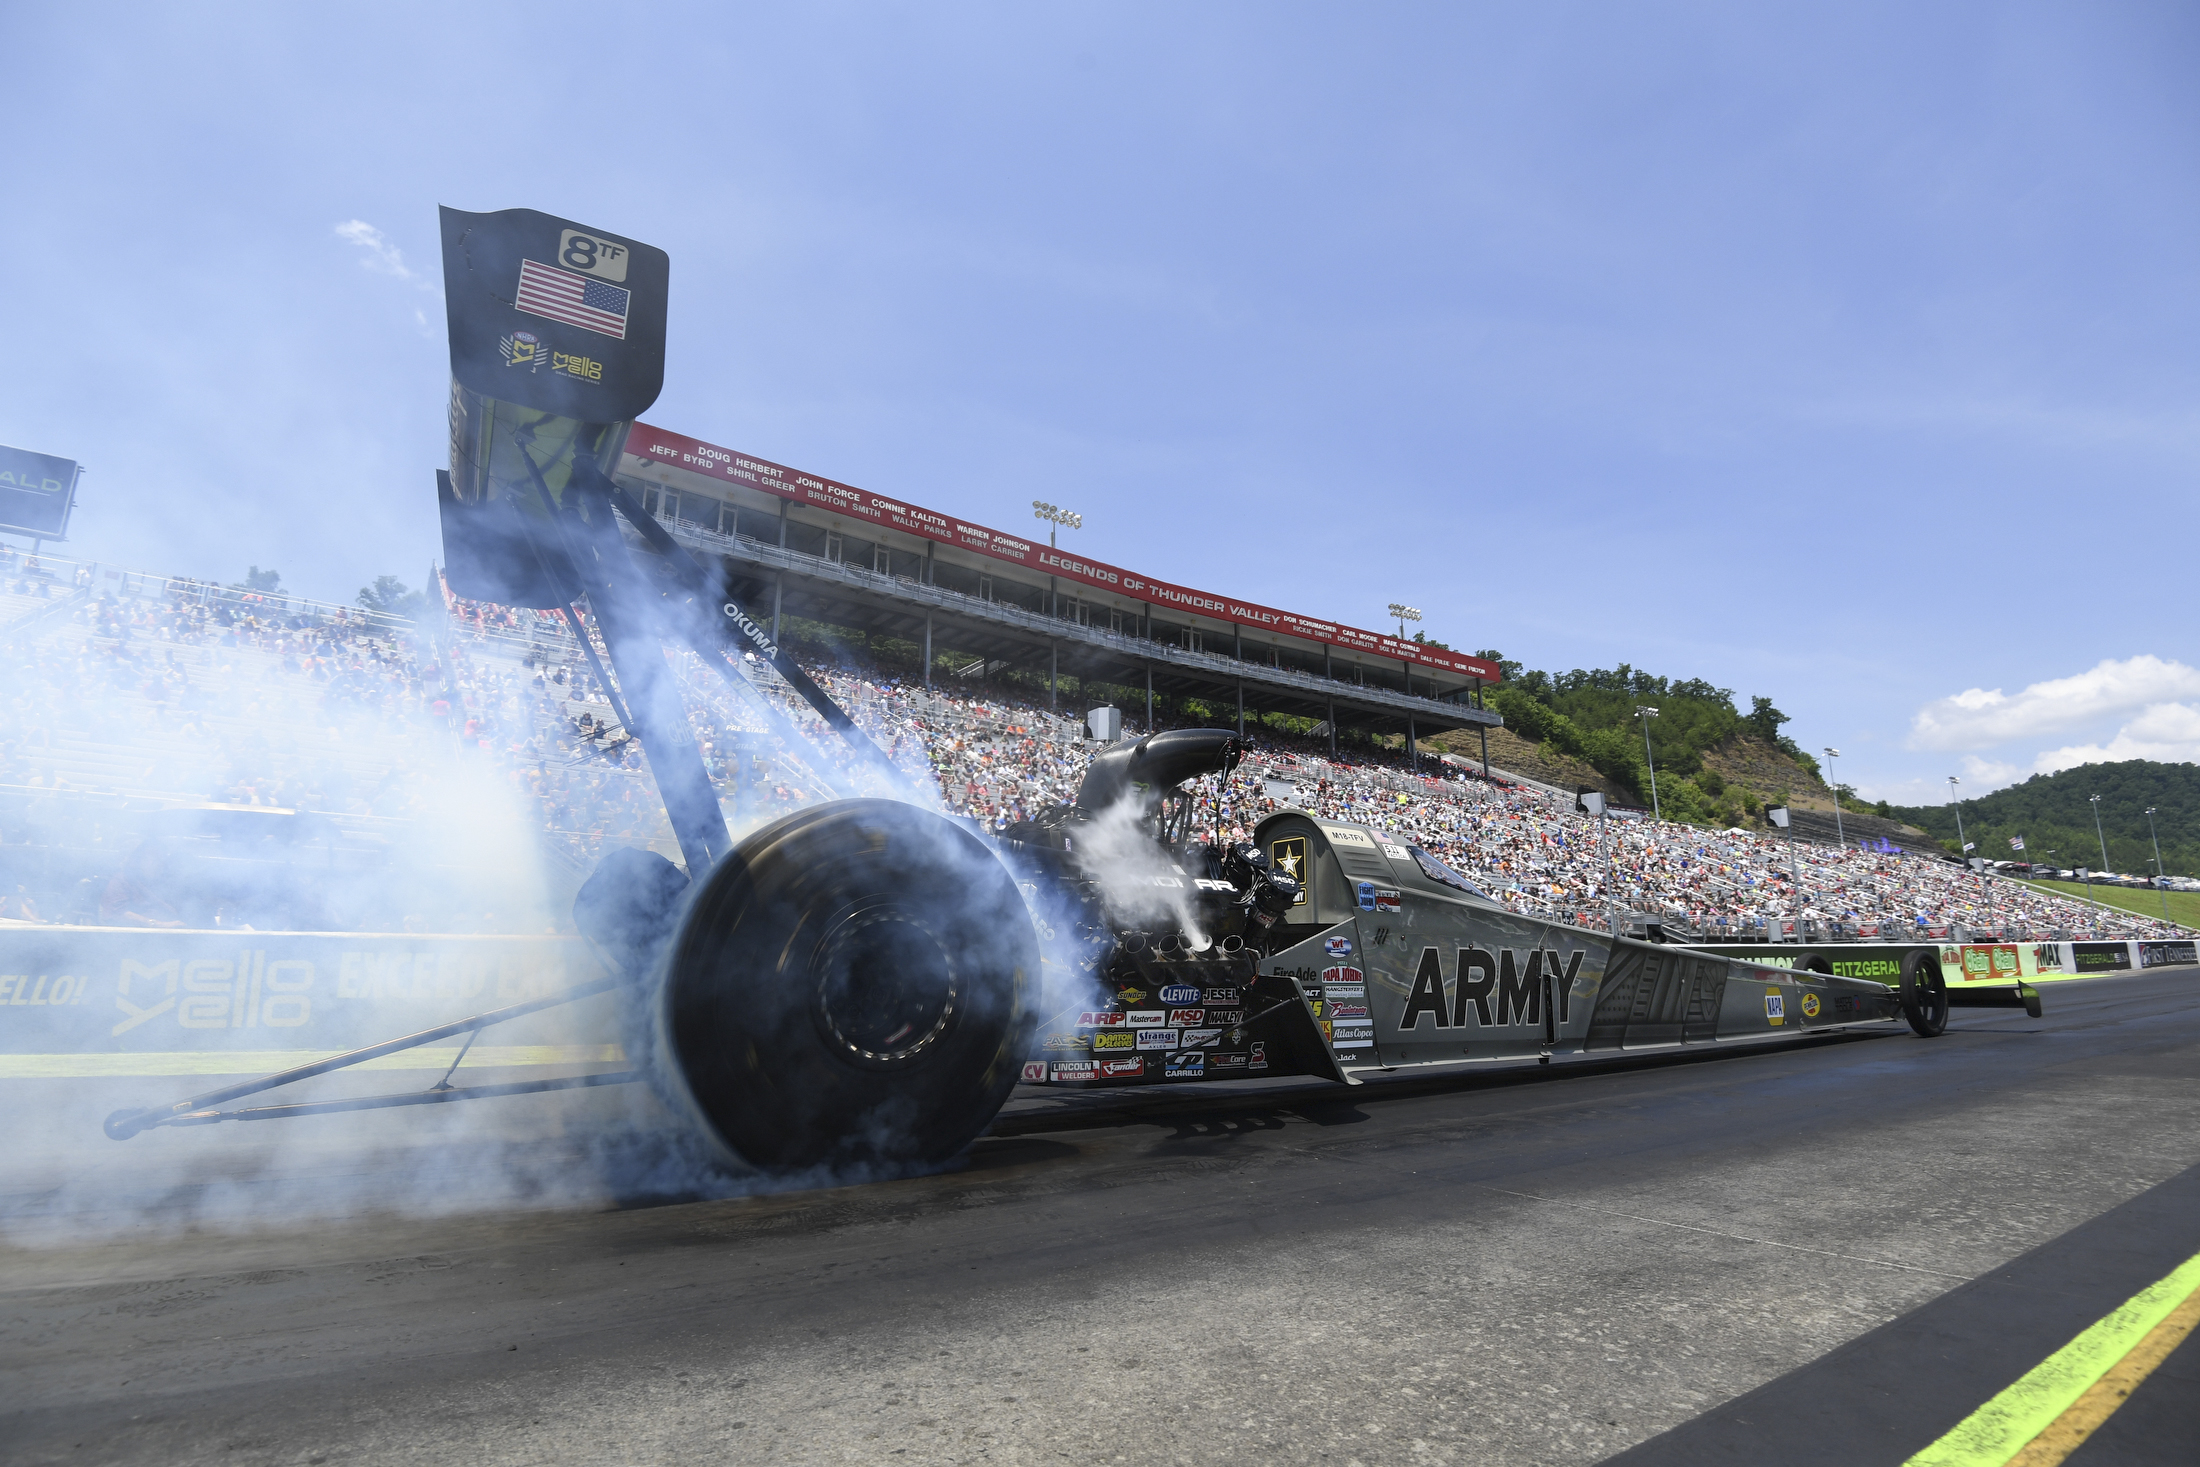 Top Fuel pilot Tony Schumacher racing on Sunday at the Fitzgerald USA NHRA Thunder Valley Nationals